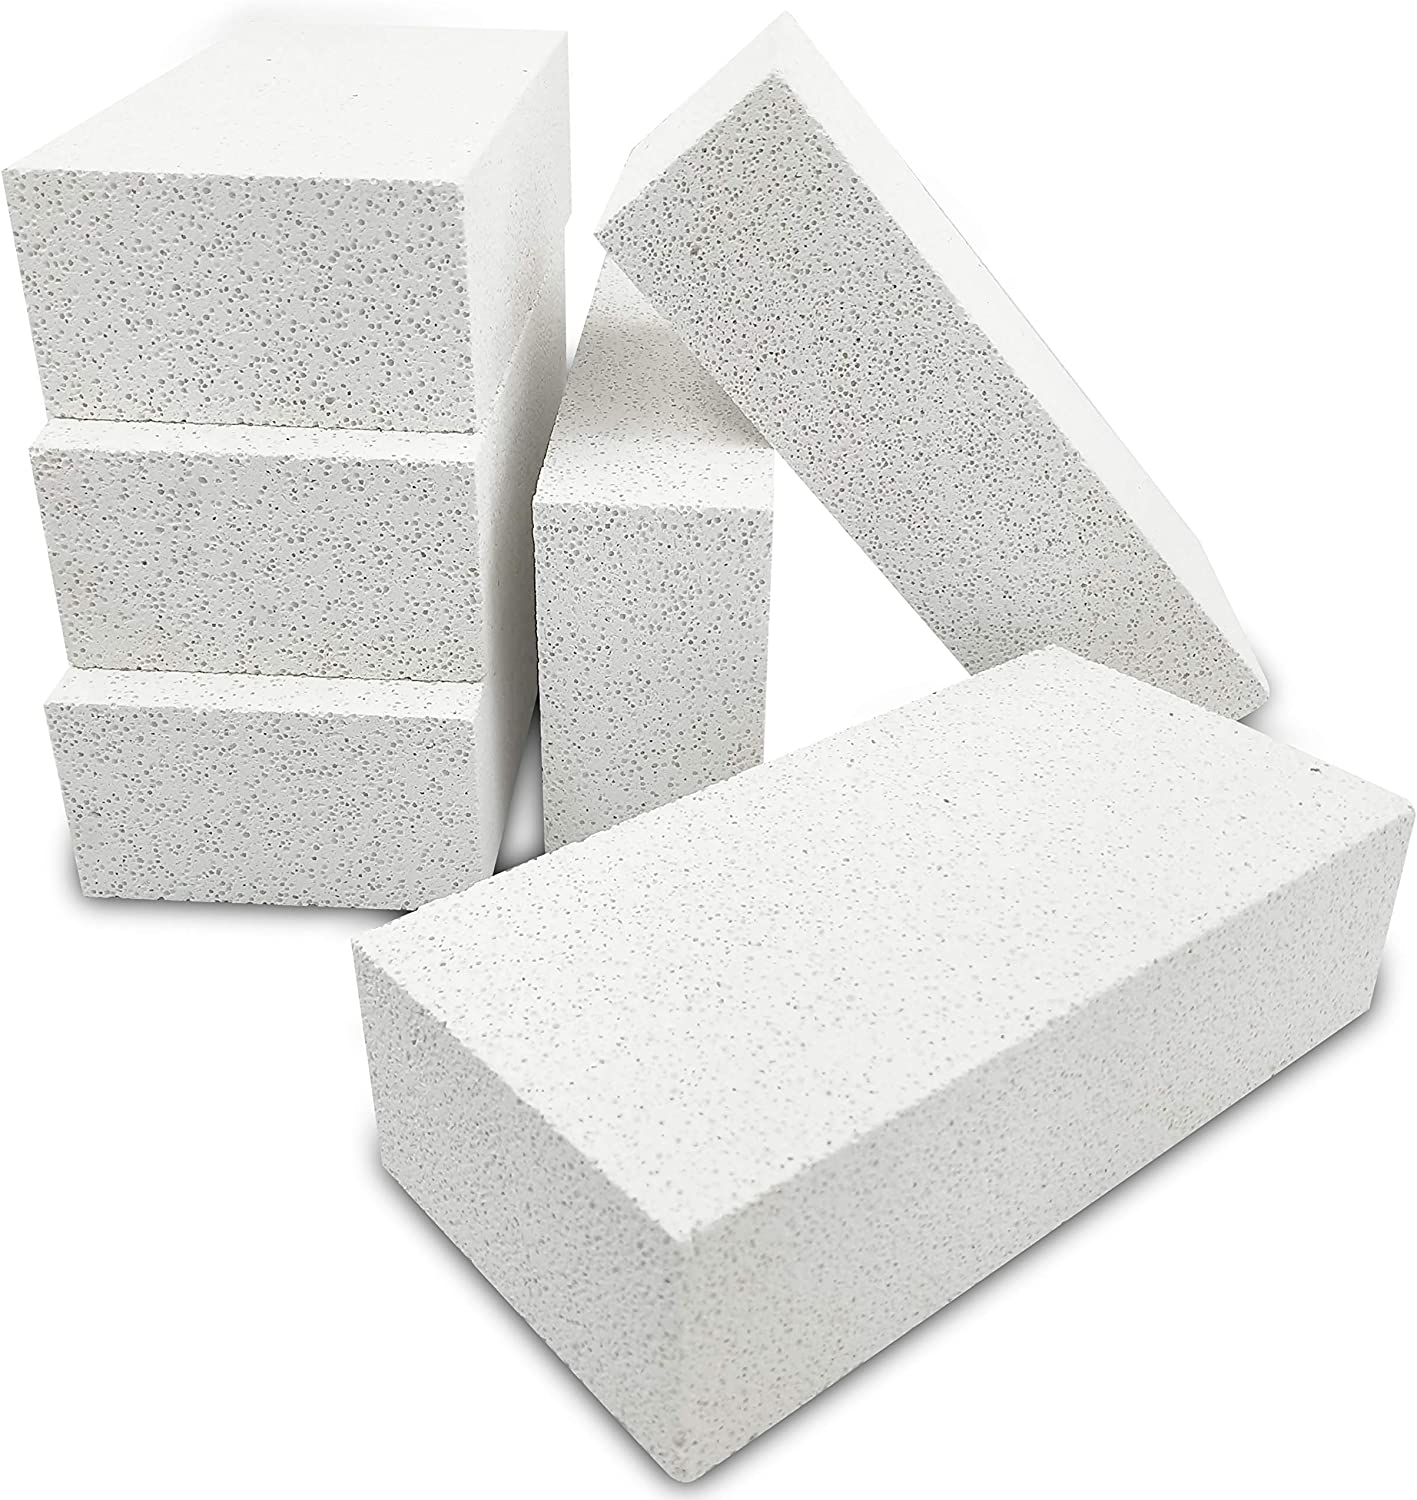 [Pack of 6] Insulating Fire Brick for Forge, Soft Insulated Fire Brick for Pizza Oven, Kilns, 2700F Fireplace Bricks, Fire Pit Accessories for Heater, Metal Clay, Jewelry Soldering 9